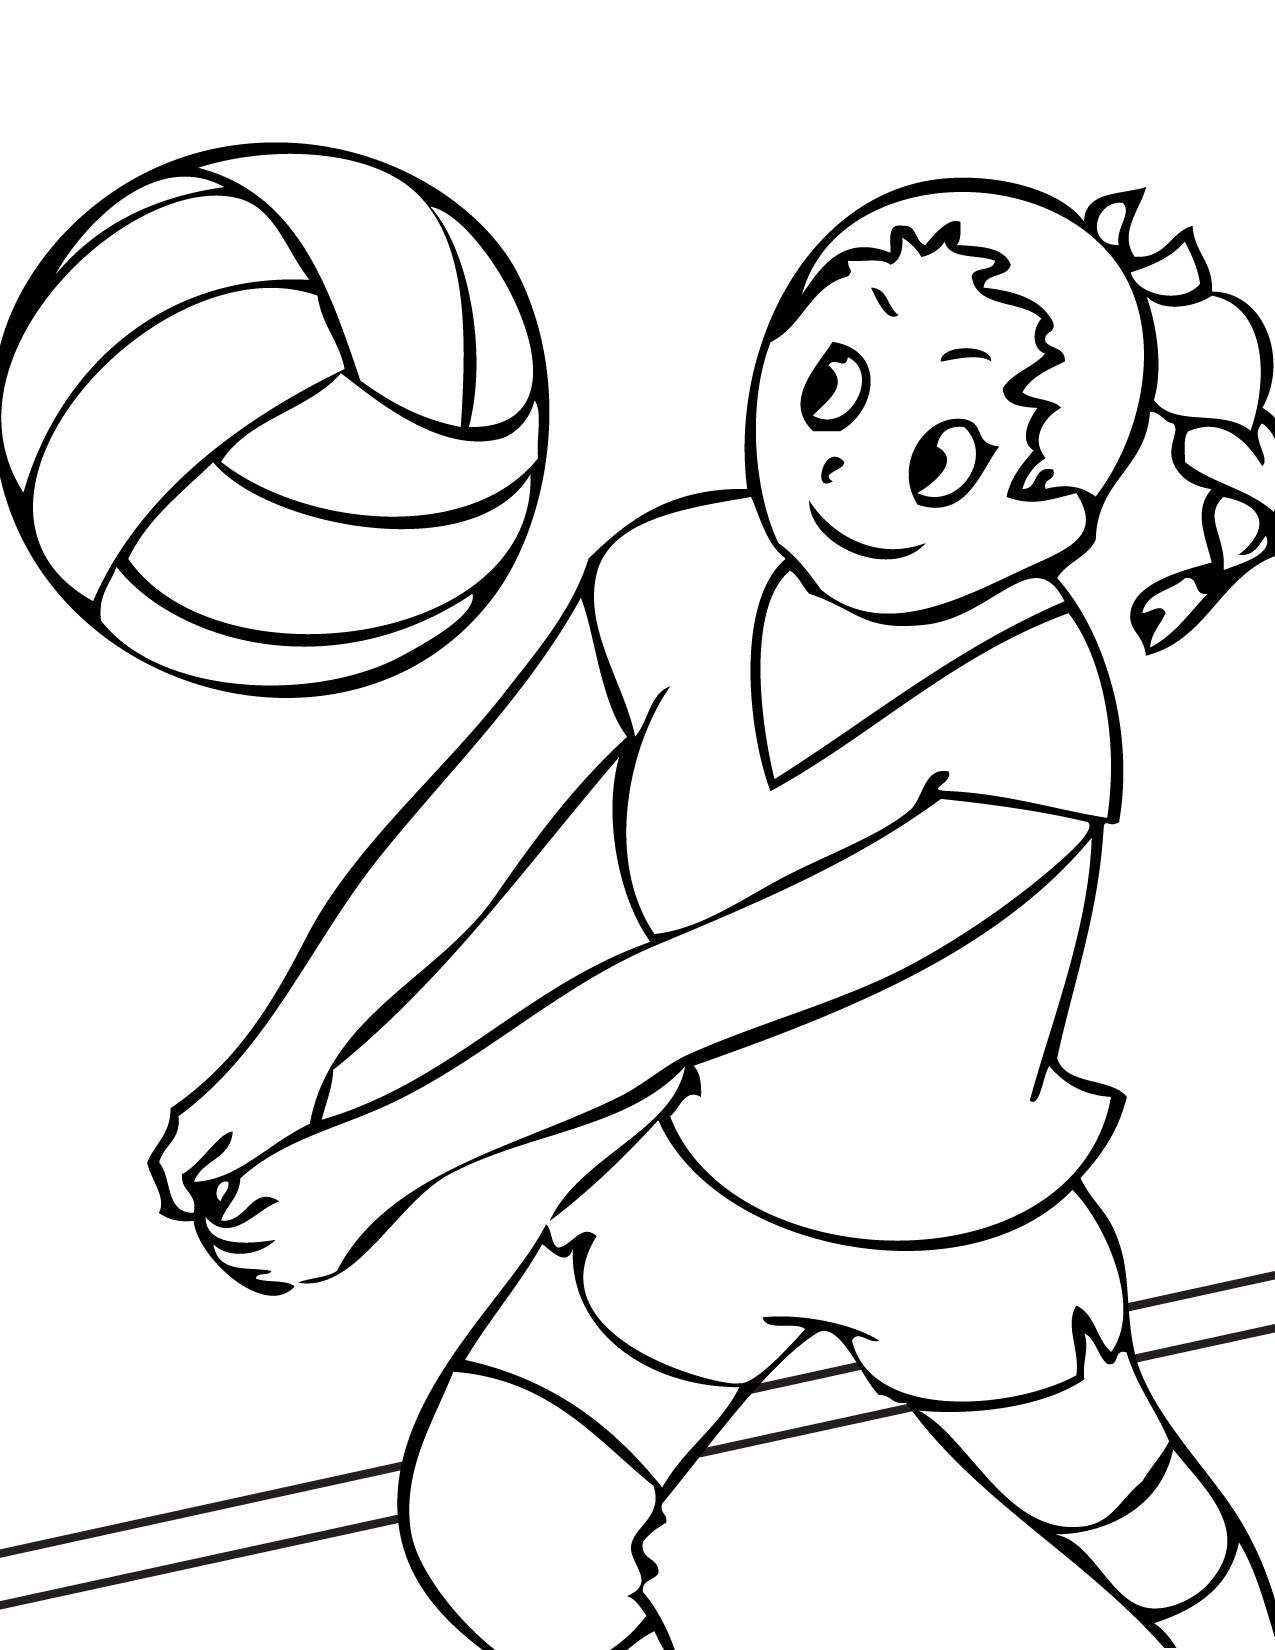 1275x1650 Sports Equipment Coloring Page Free Draw To Color